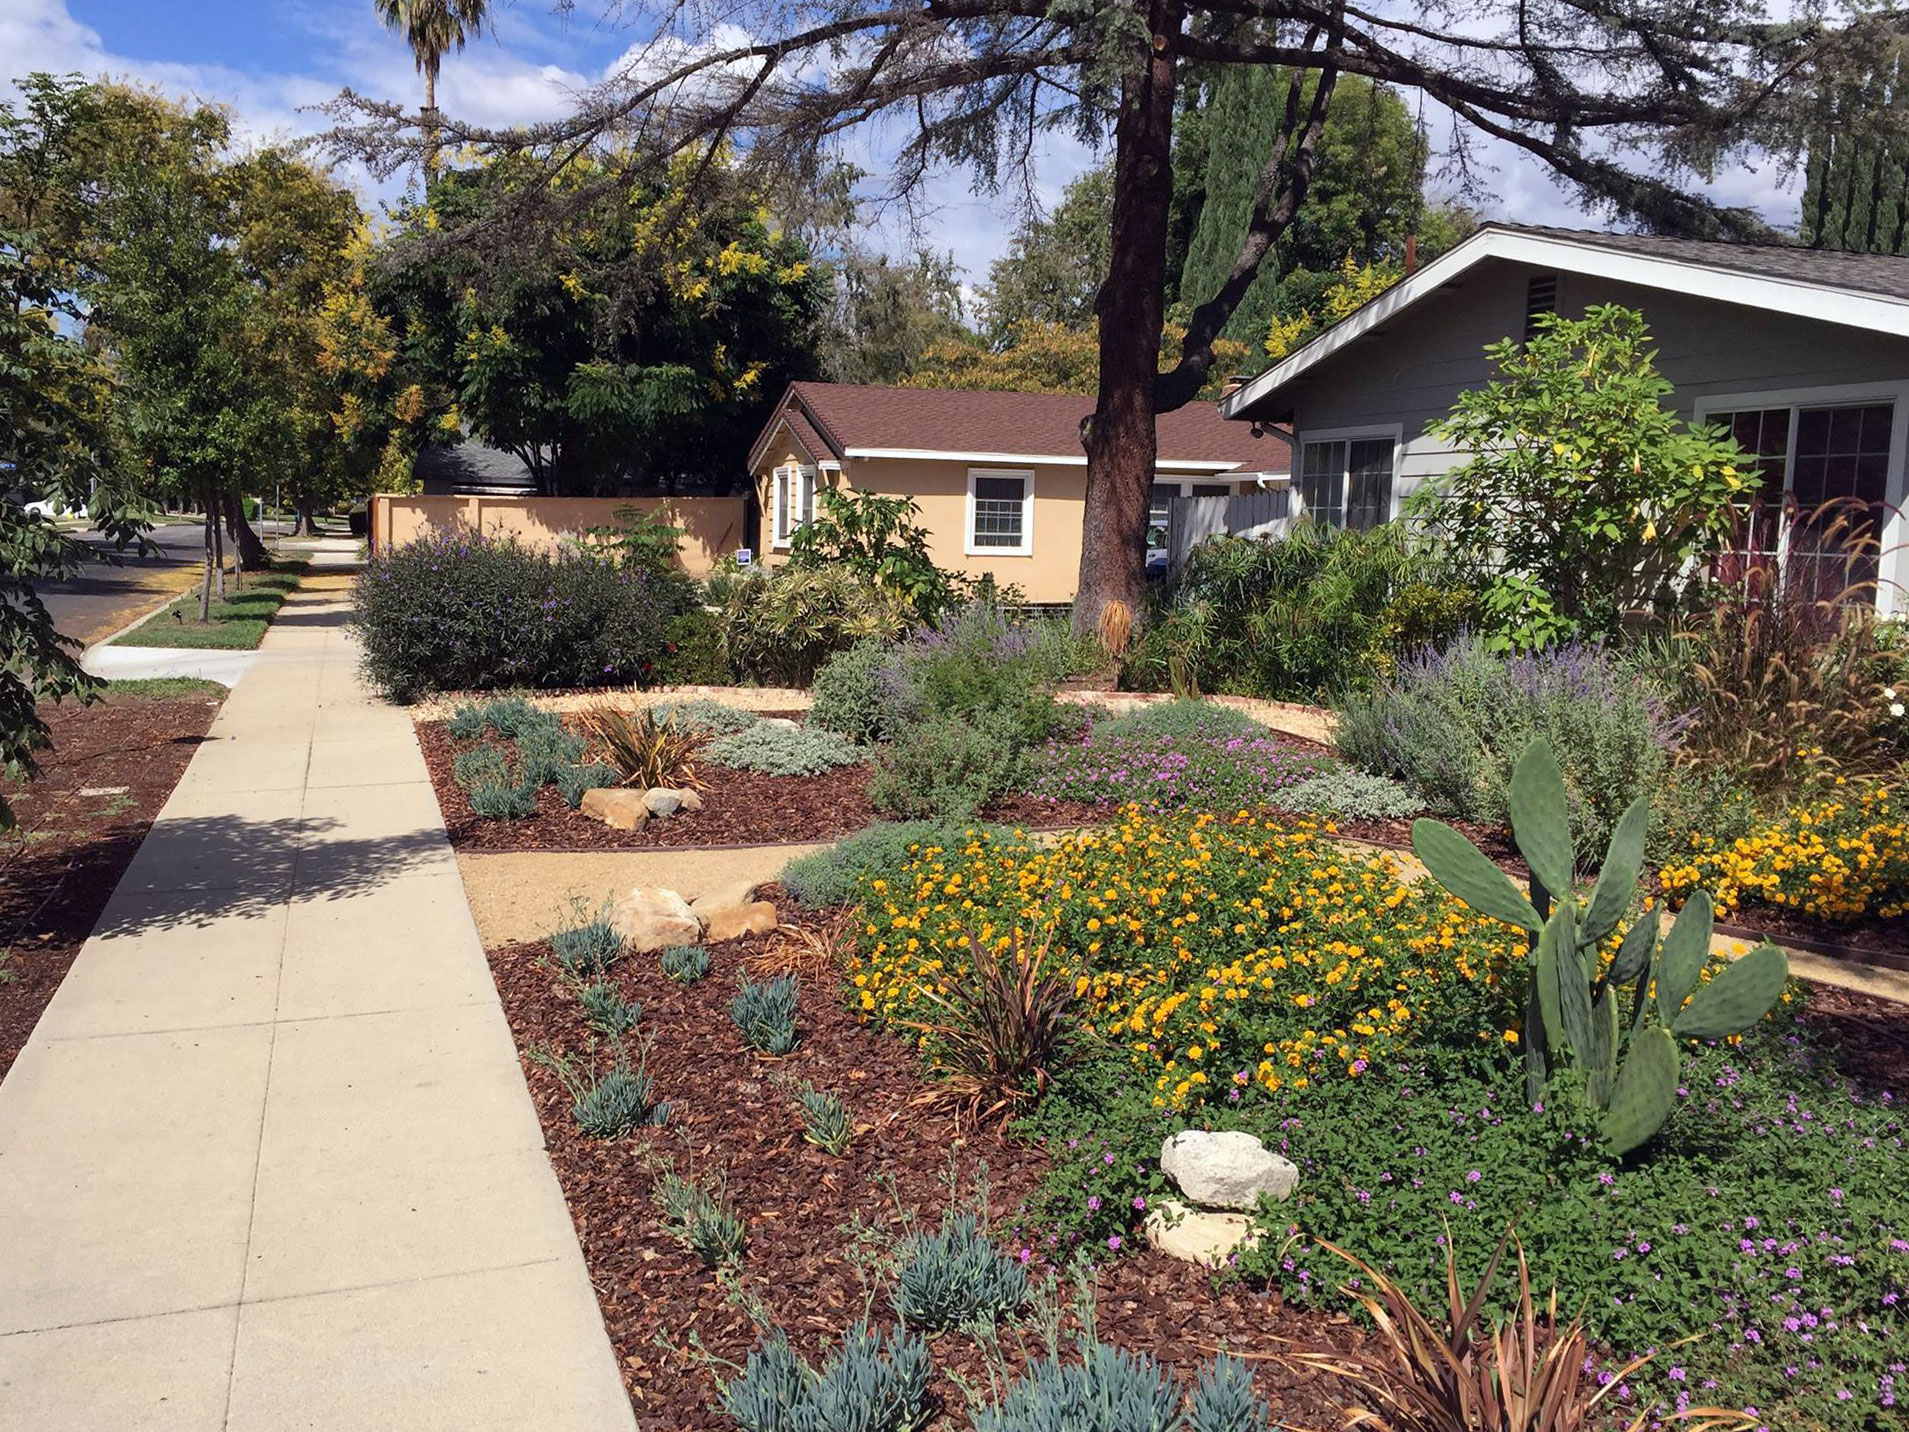 landscaper in Encino inspecting the yard